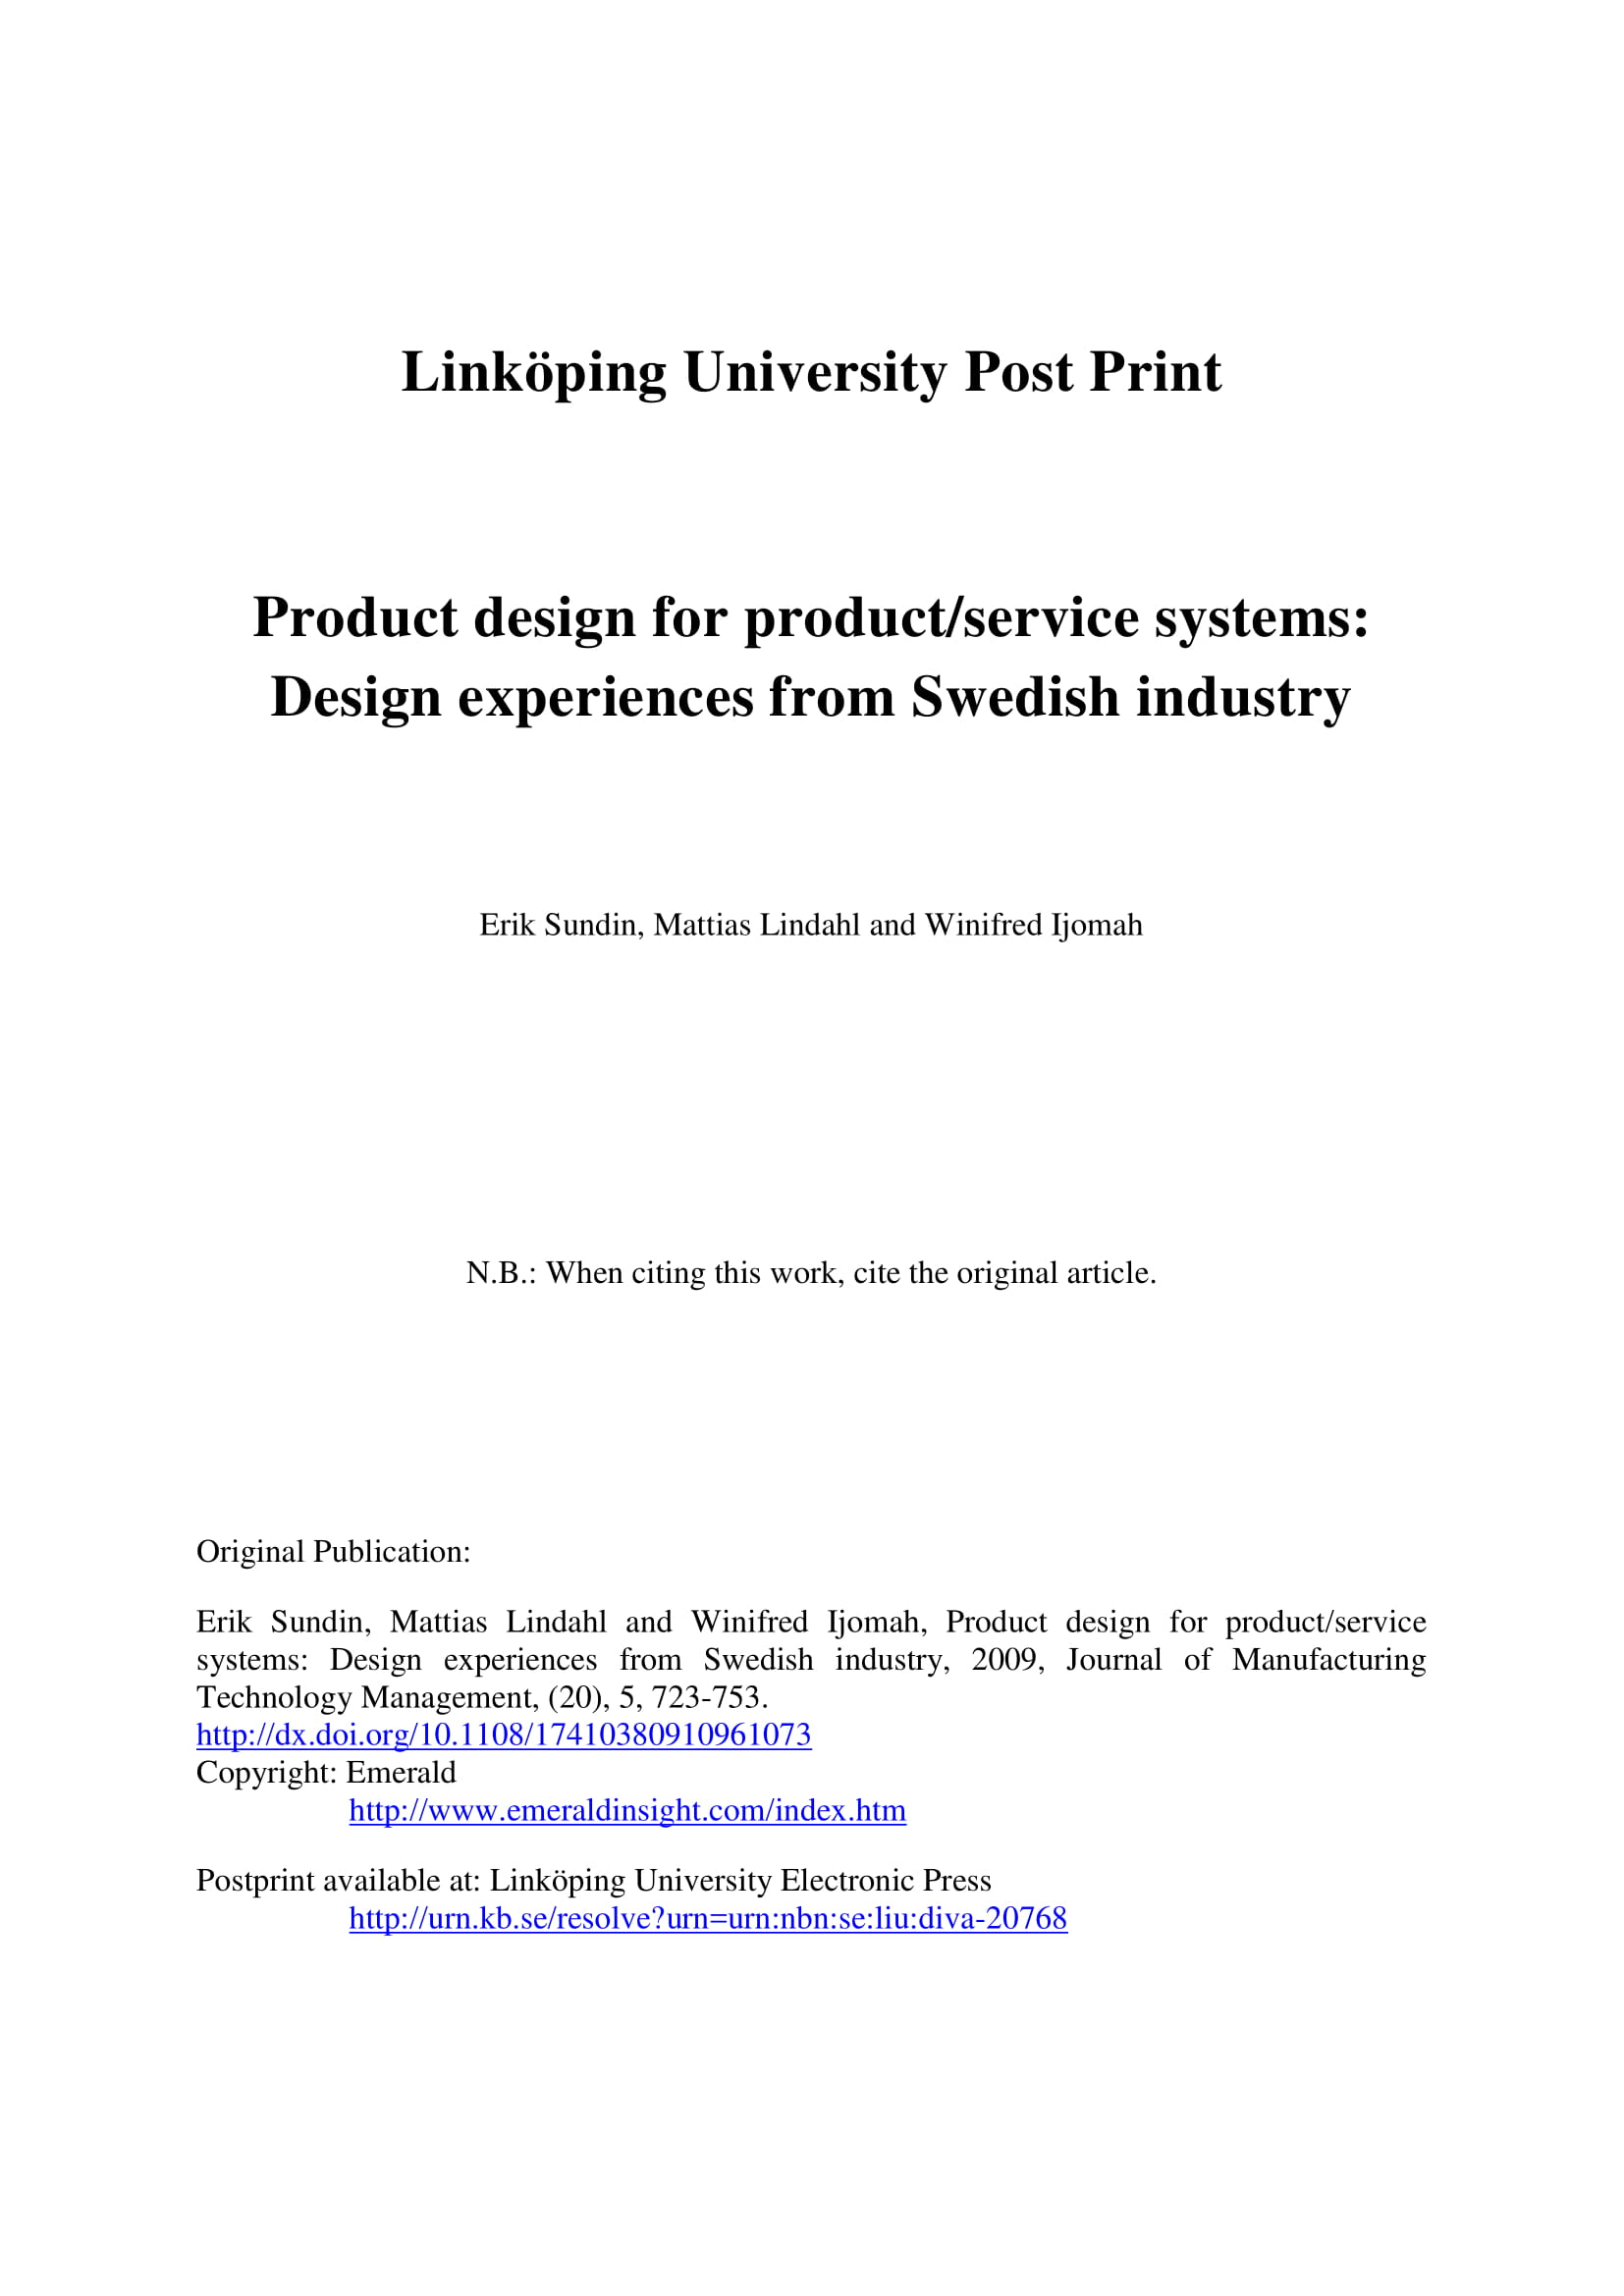 analysis of product design for product and service systems example 01